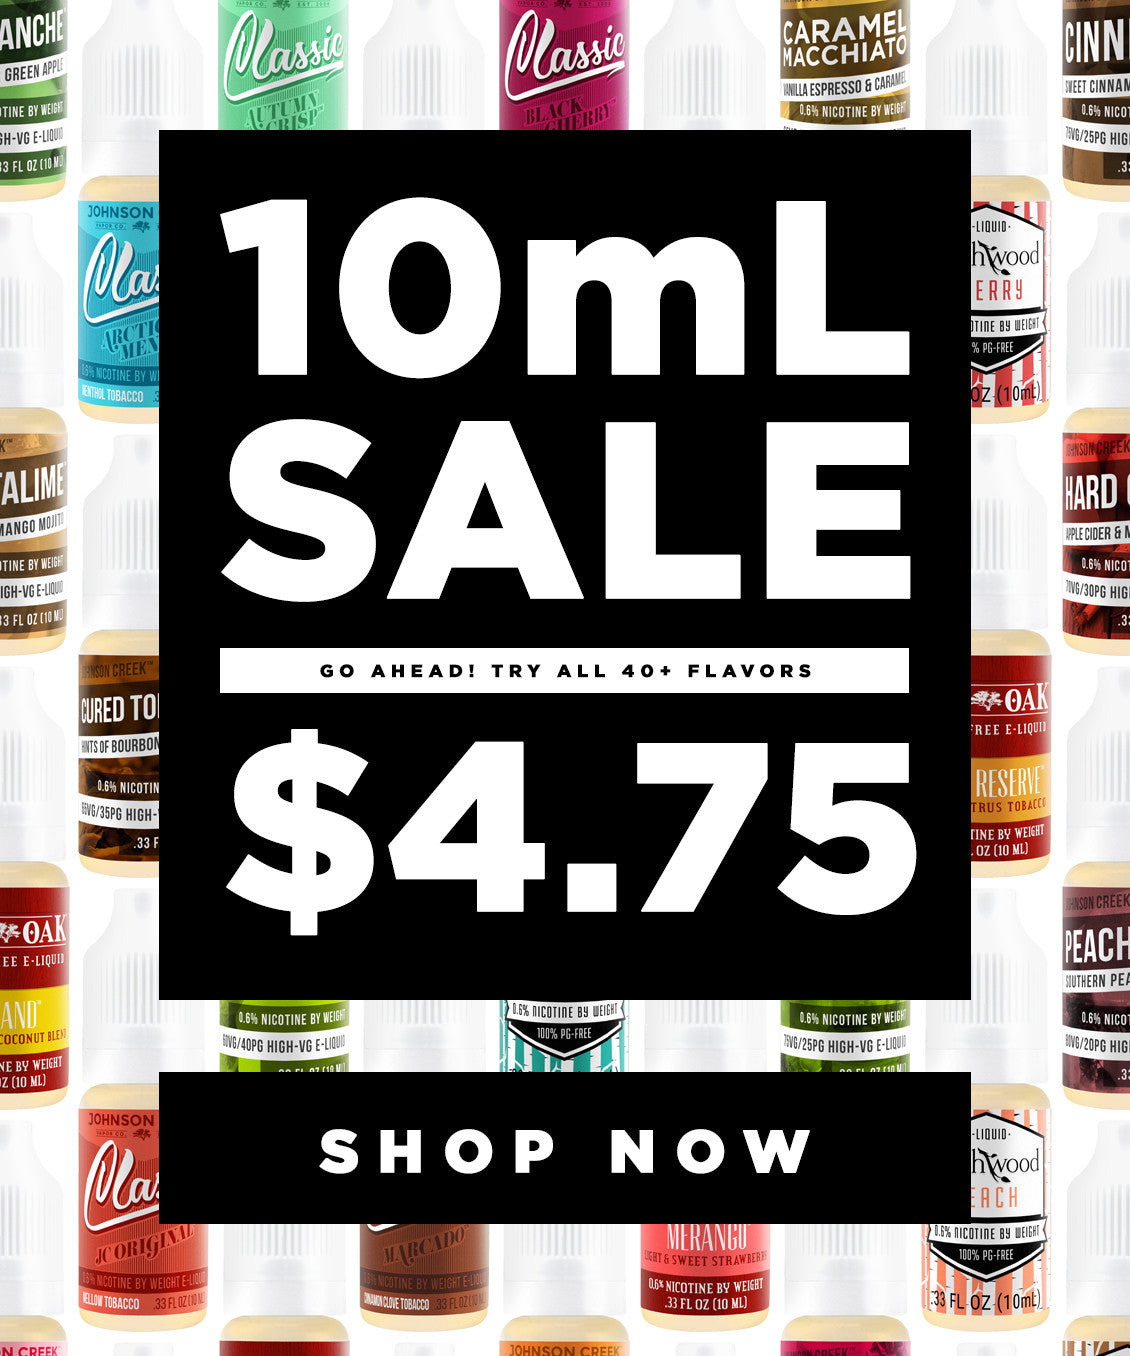 10mL sale! Go ahead, try all 40+ flavors for just $4.75 each.